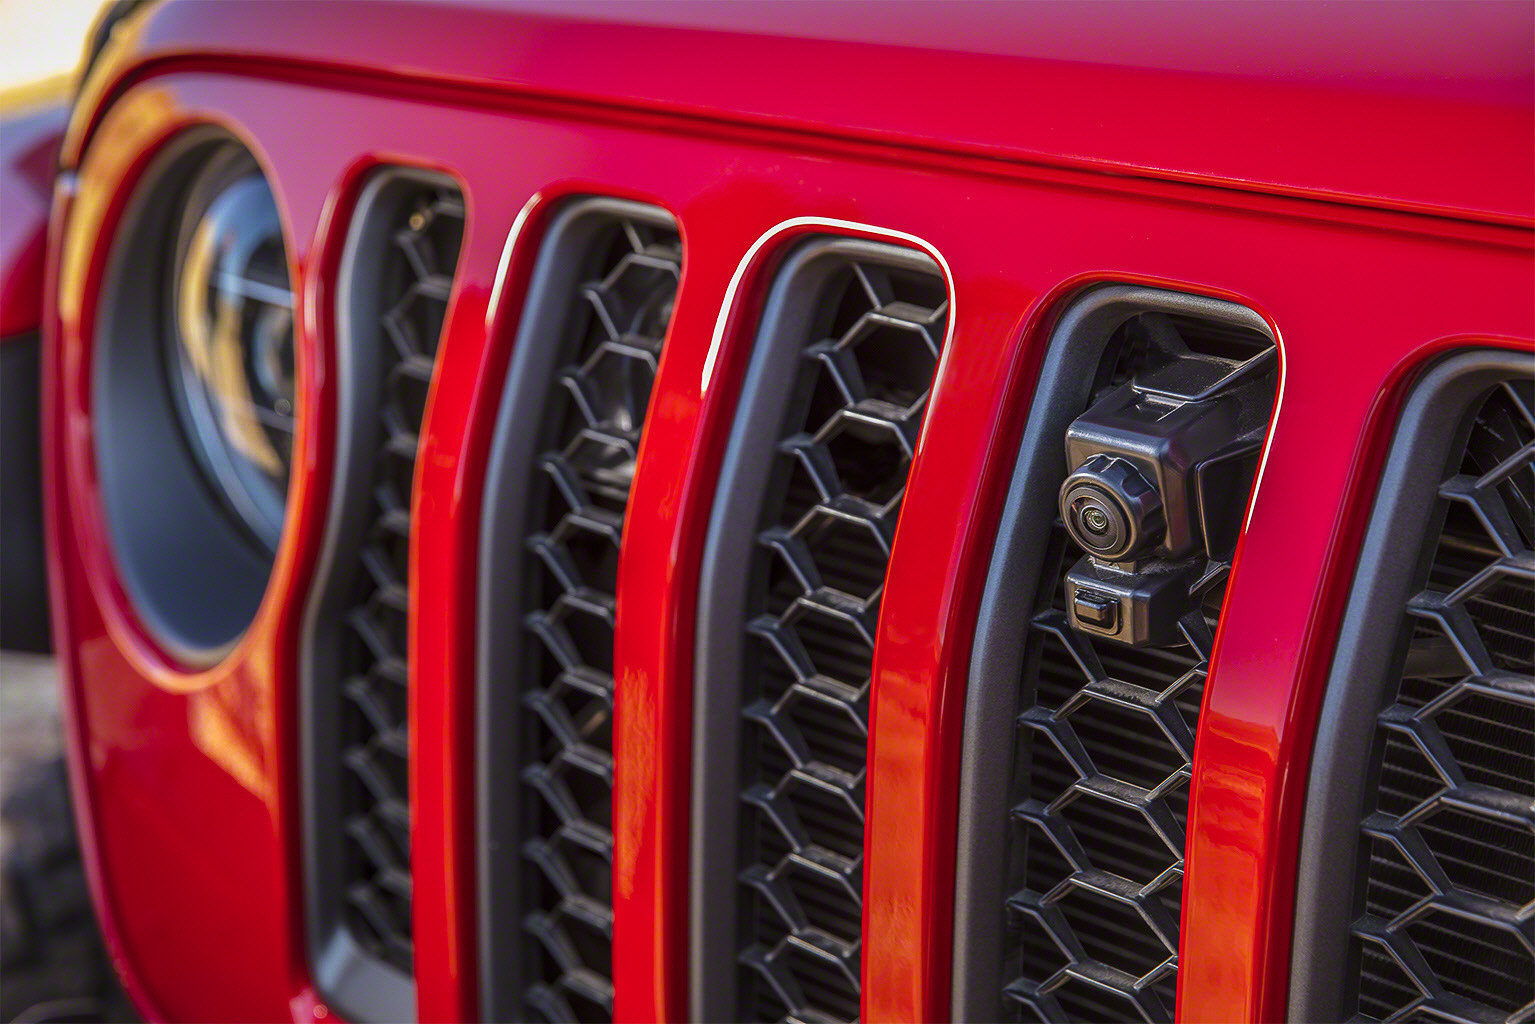 07-jeep-gladiator-2020-camera--detail--exterior--front--grille--red.jpg